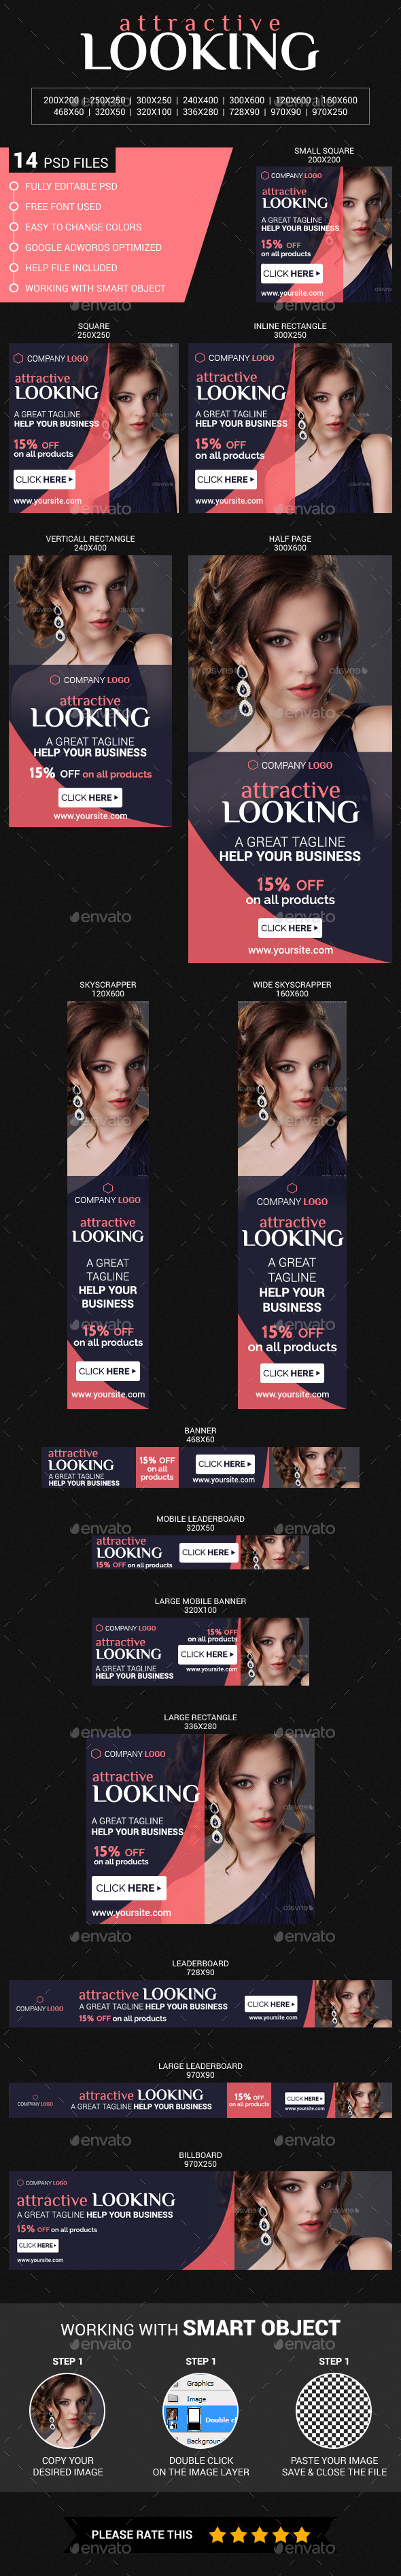 Beauty & Fashion - Banners & Ads Web Elements